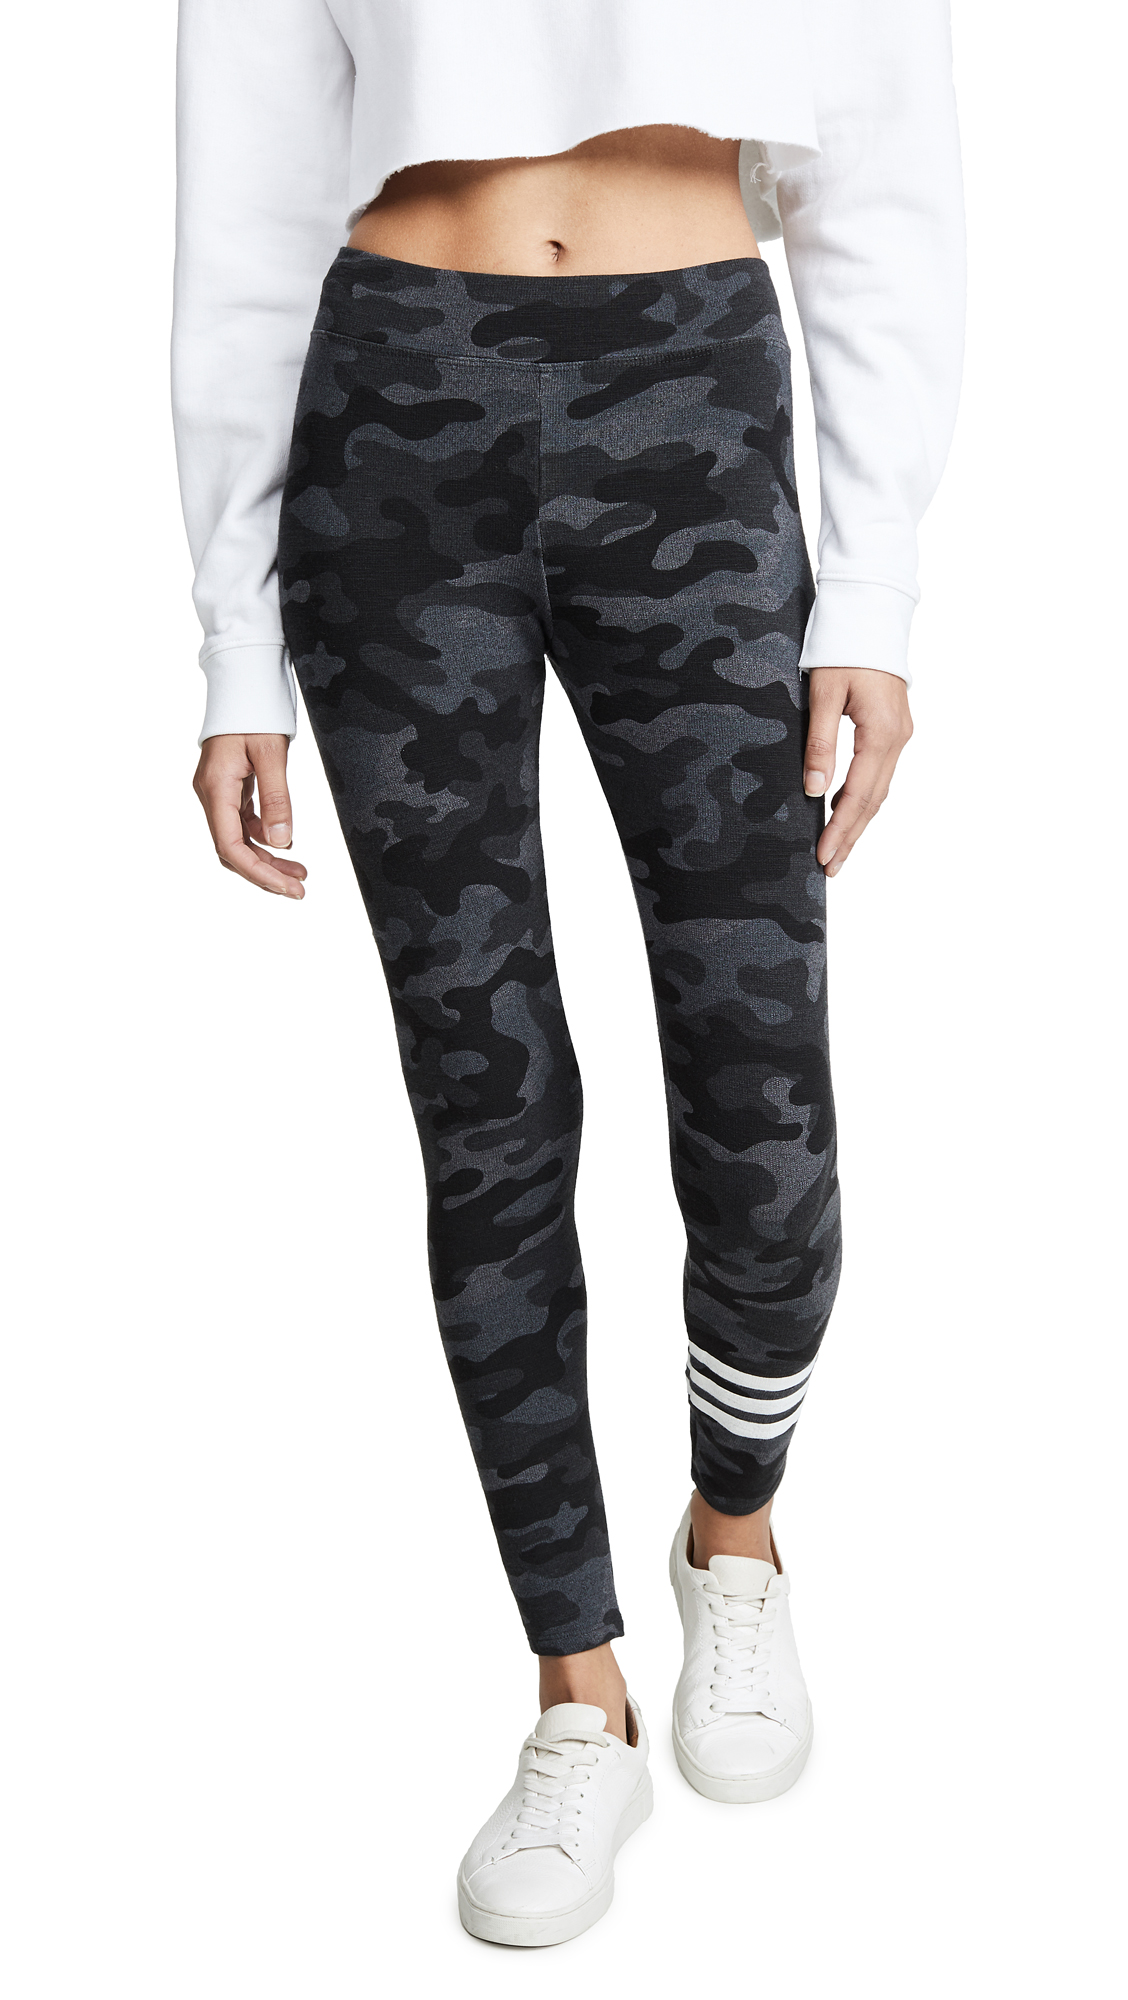 SUNDRY Camo Leggings